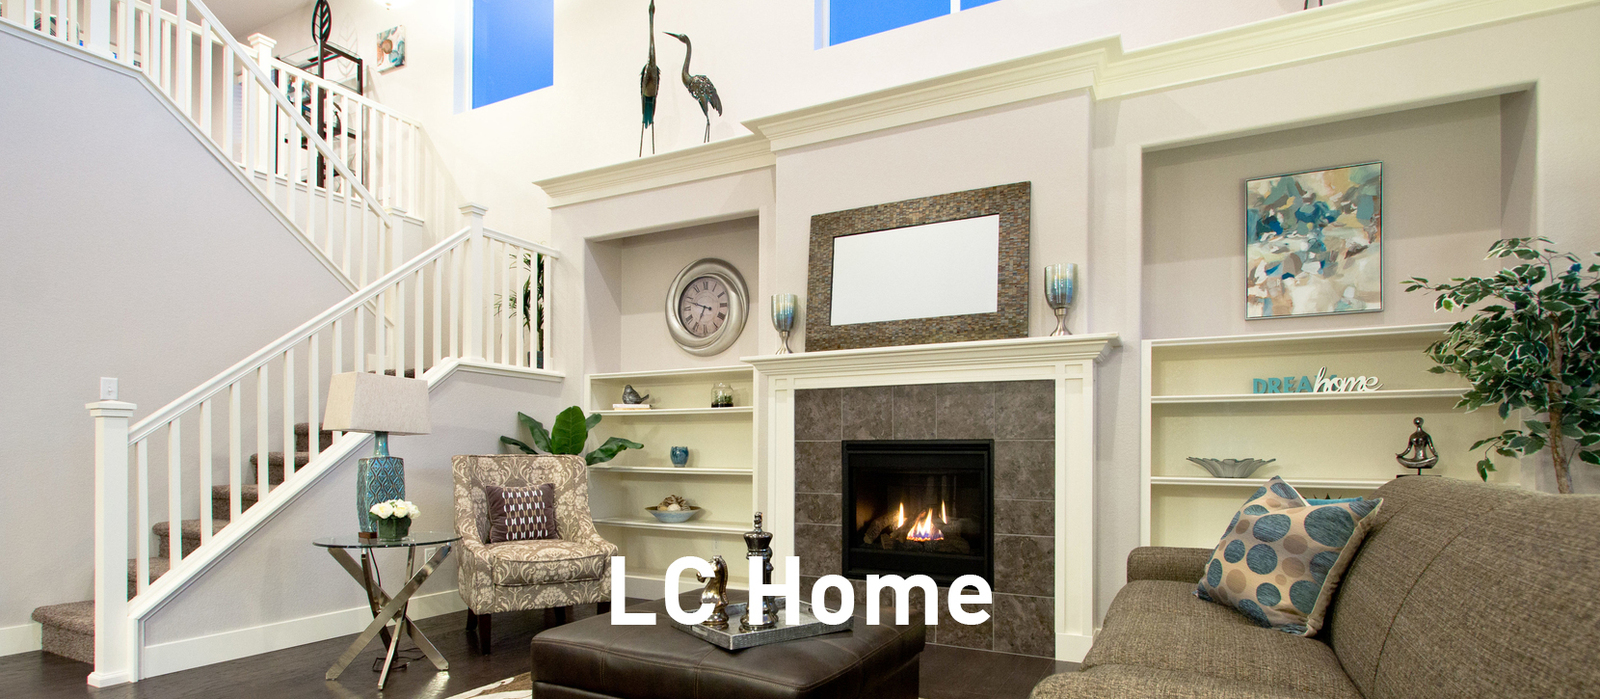 05_lc_home